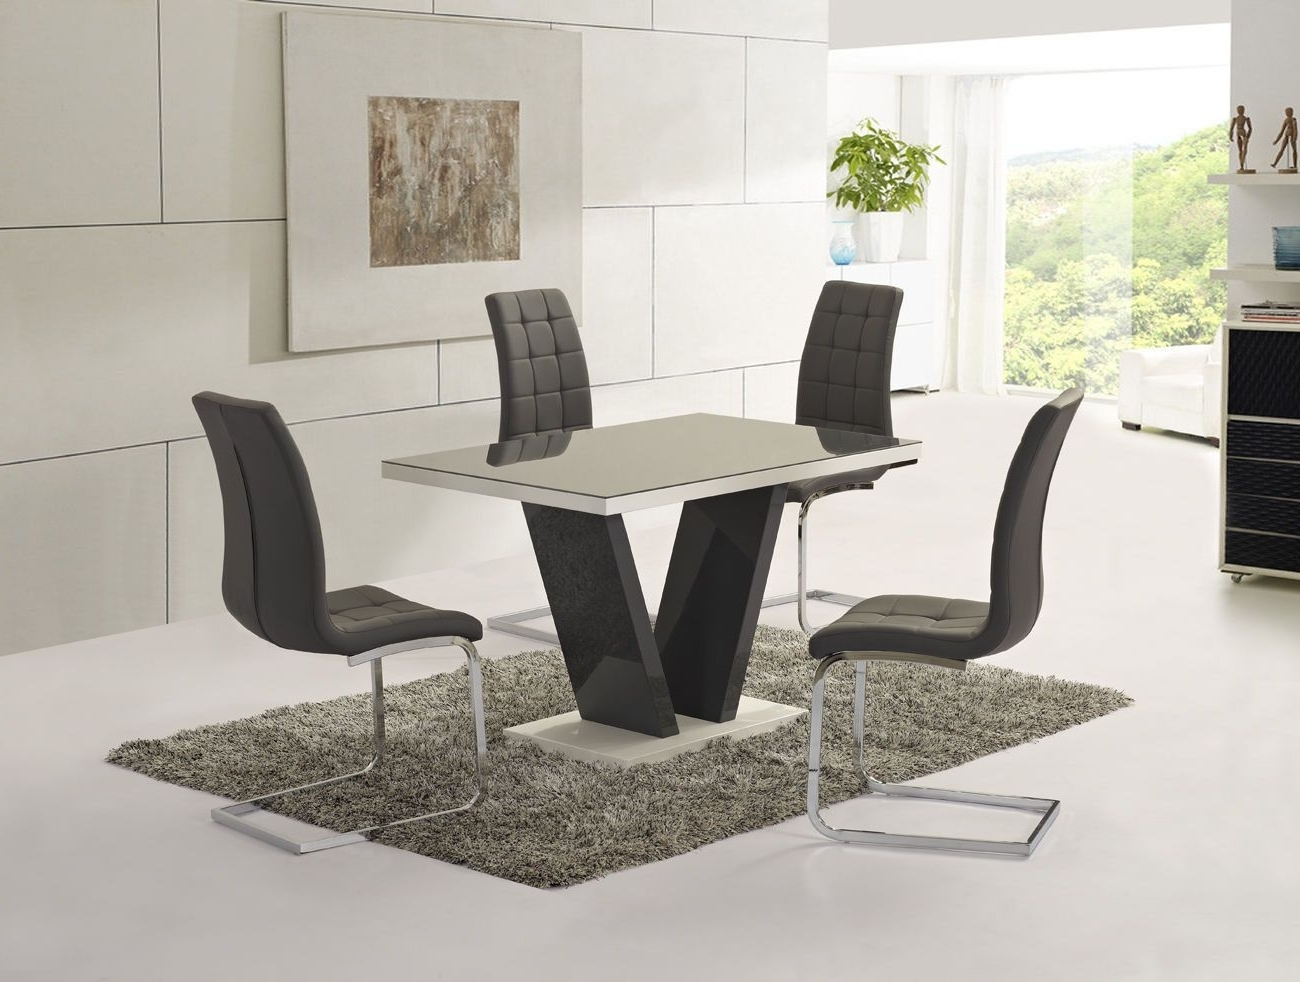 2019 White High Gloss Dining Table 6 Chairs - Modern Style Furniture for Fashionable White High Gloss Dining Tables 6 Chairs